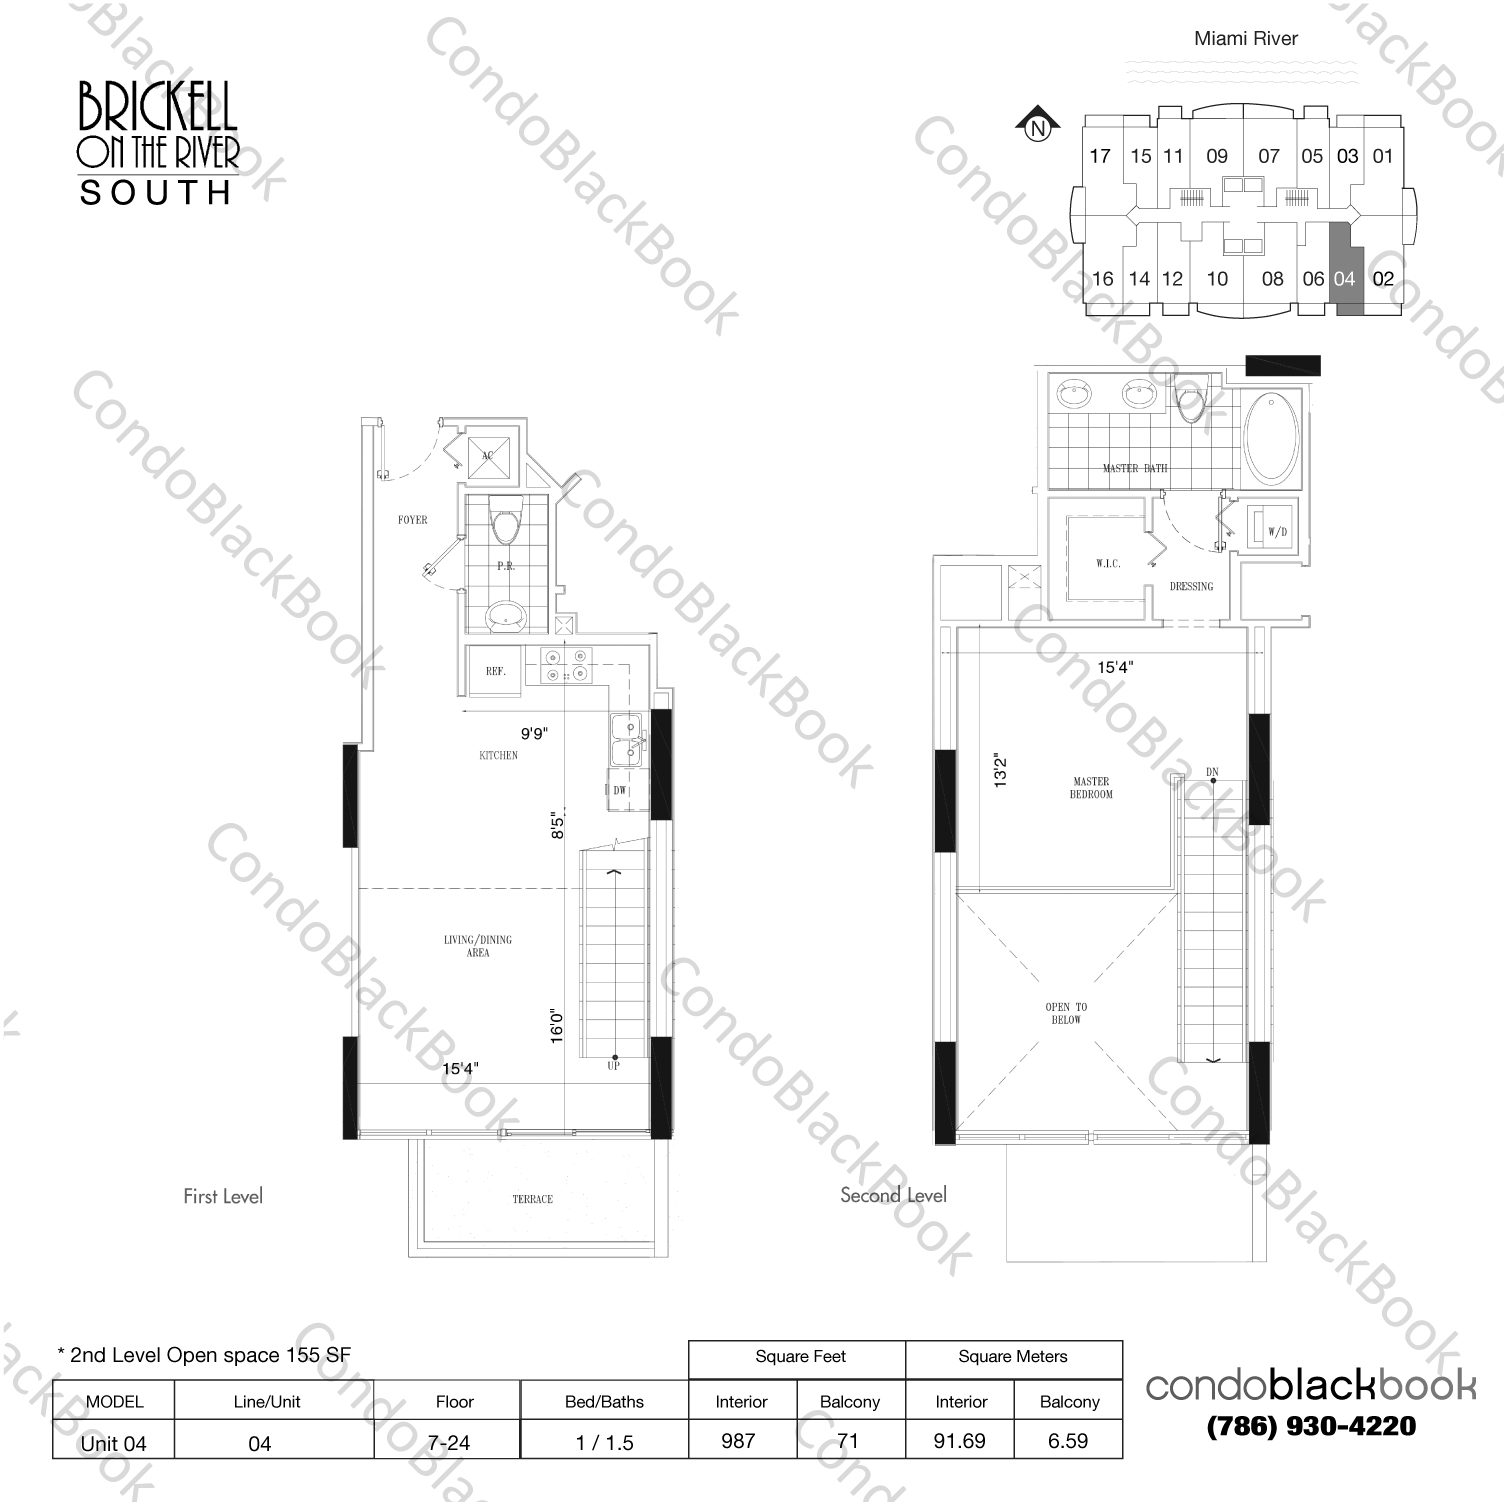 Floor plan for Brickell on the River South Brickell Miami, model Unit 04, line 04, 1/1.5 bedrooms, 832 sq ft